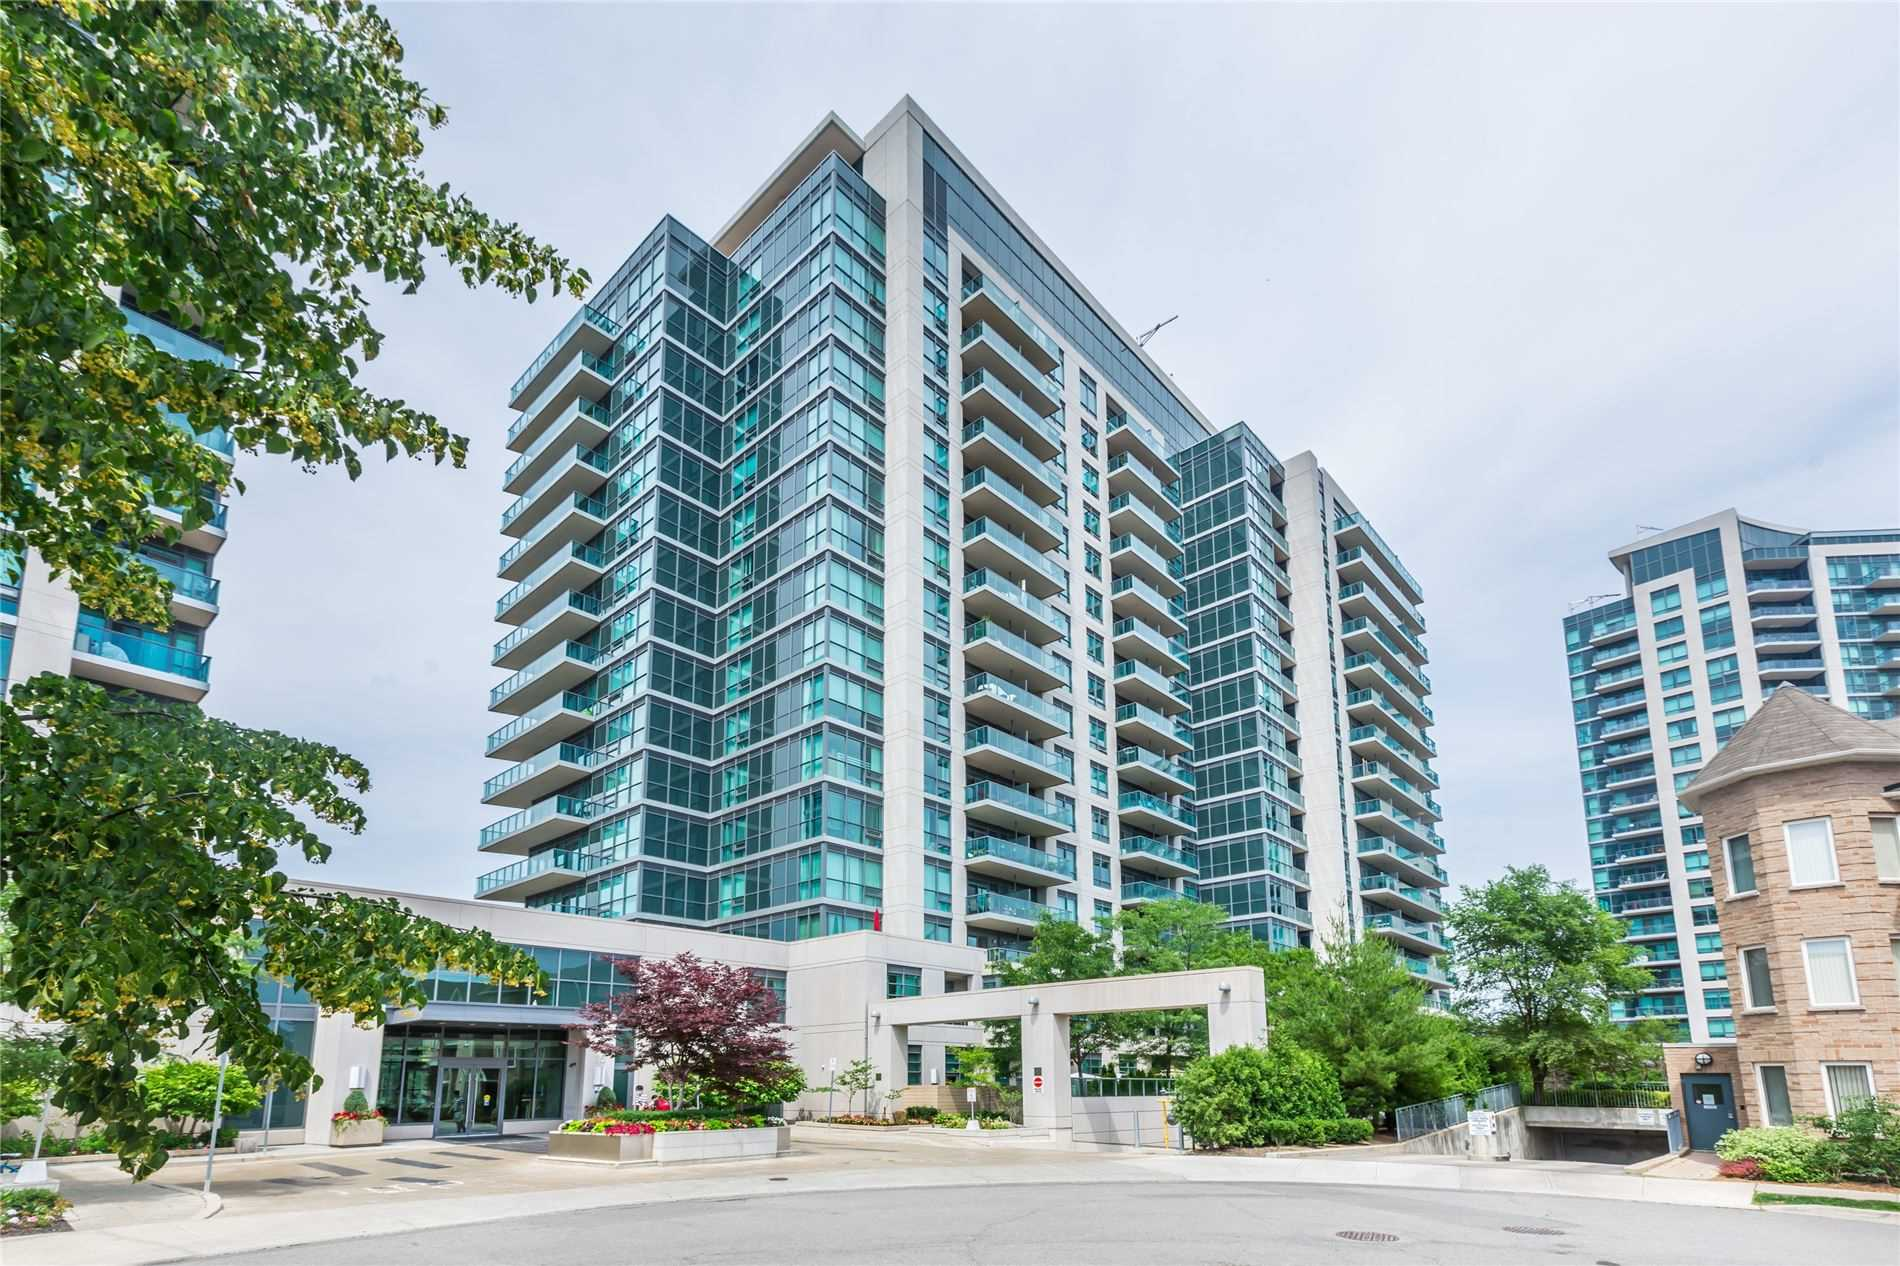 For Sale: 1207 - 35 Brian Peck Crescent, Toronto, ON | 3 Bed, 2 Bath Condo for $1048000.00. See 8 photos!